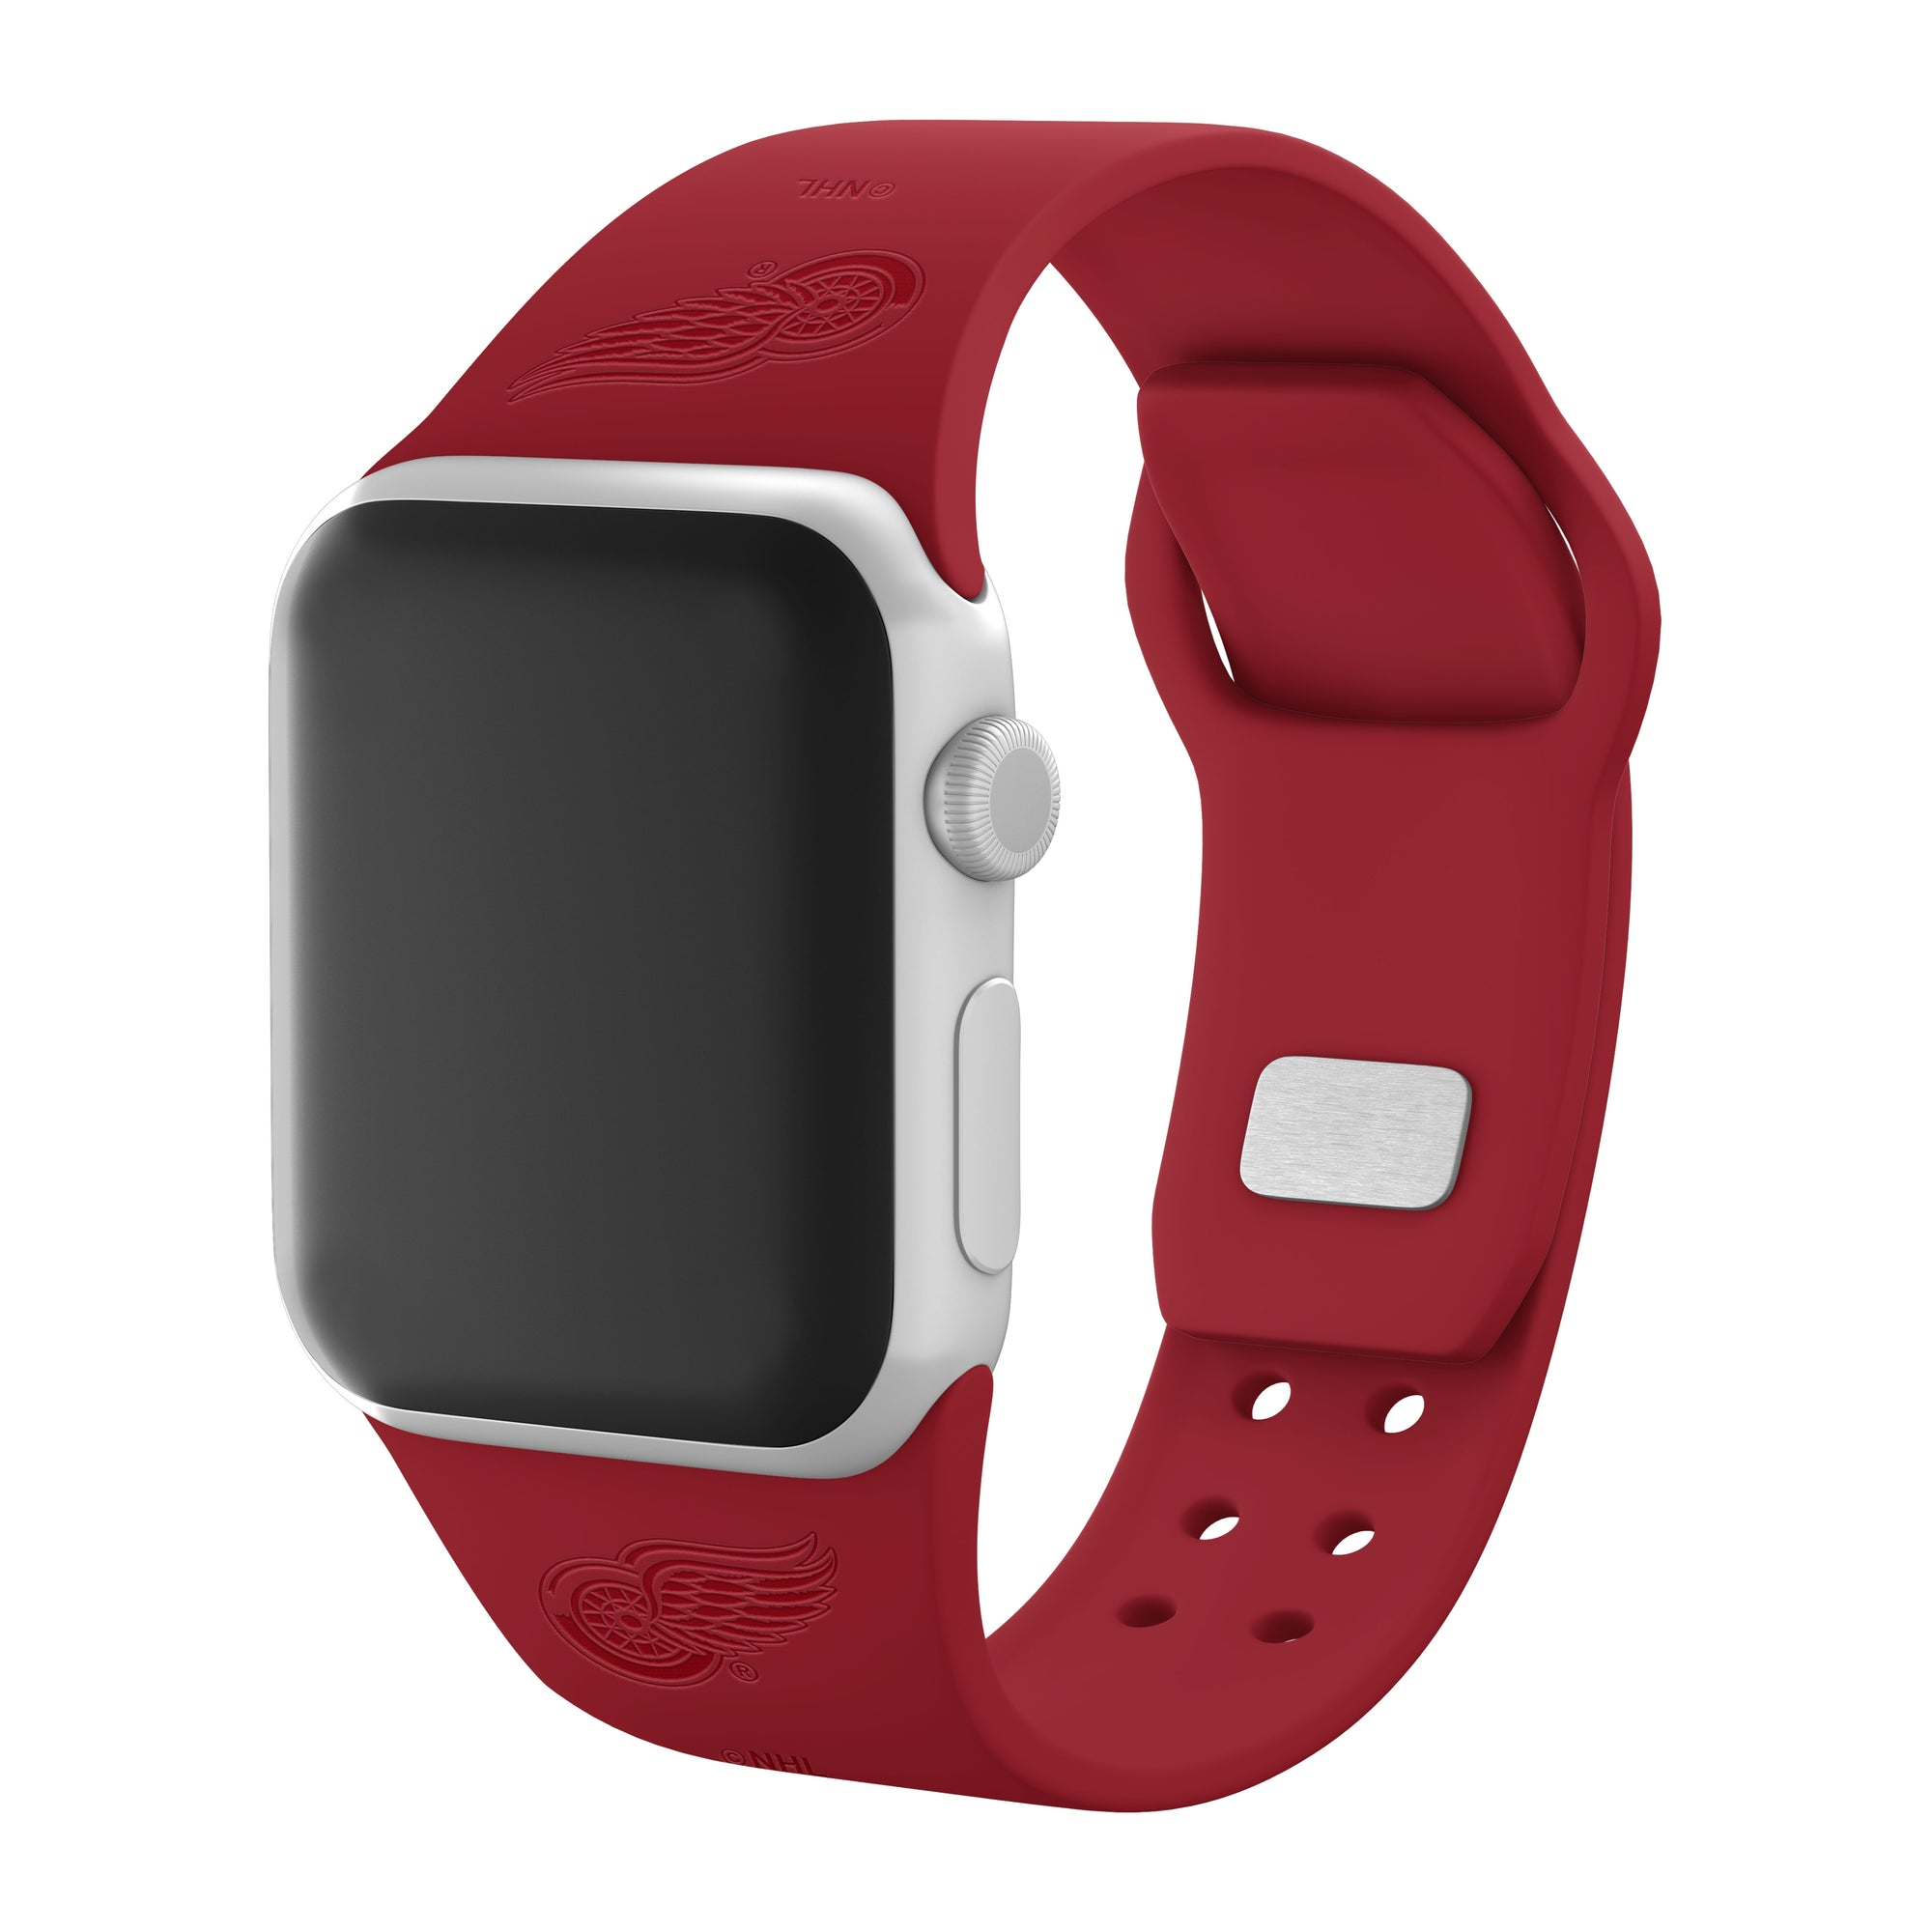 Detroit Red Wings Debossed Apple Watch Band